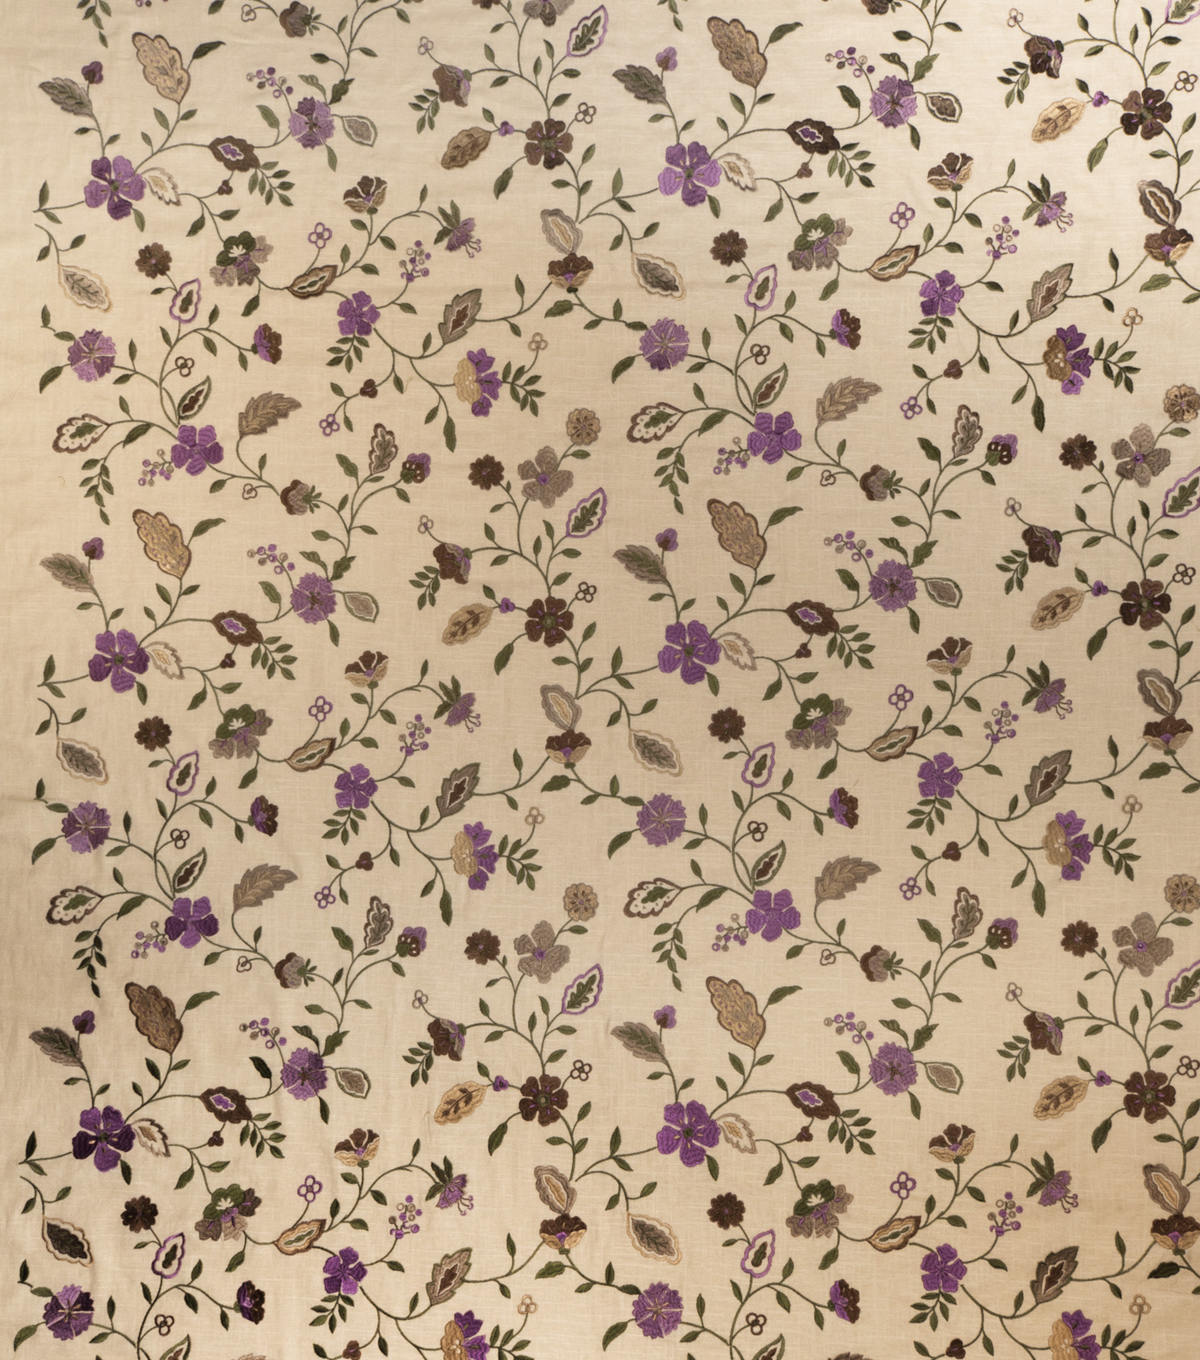 Home Decor 8\u0022x8\u0022 Fabric Swatch-Jaclyn Smith Fresno  Hydrangea